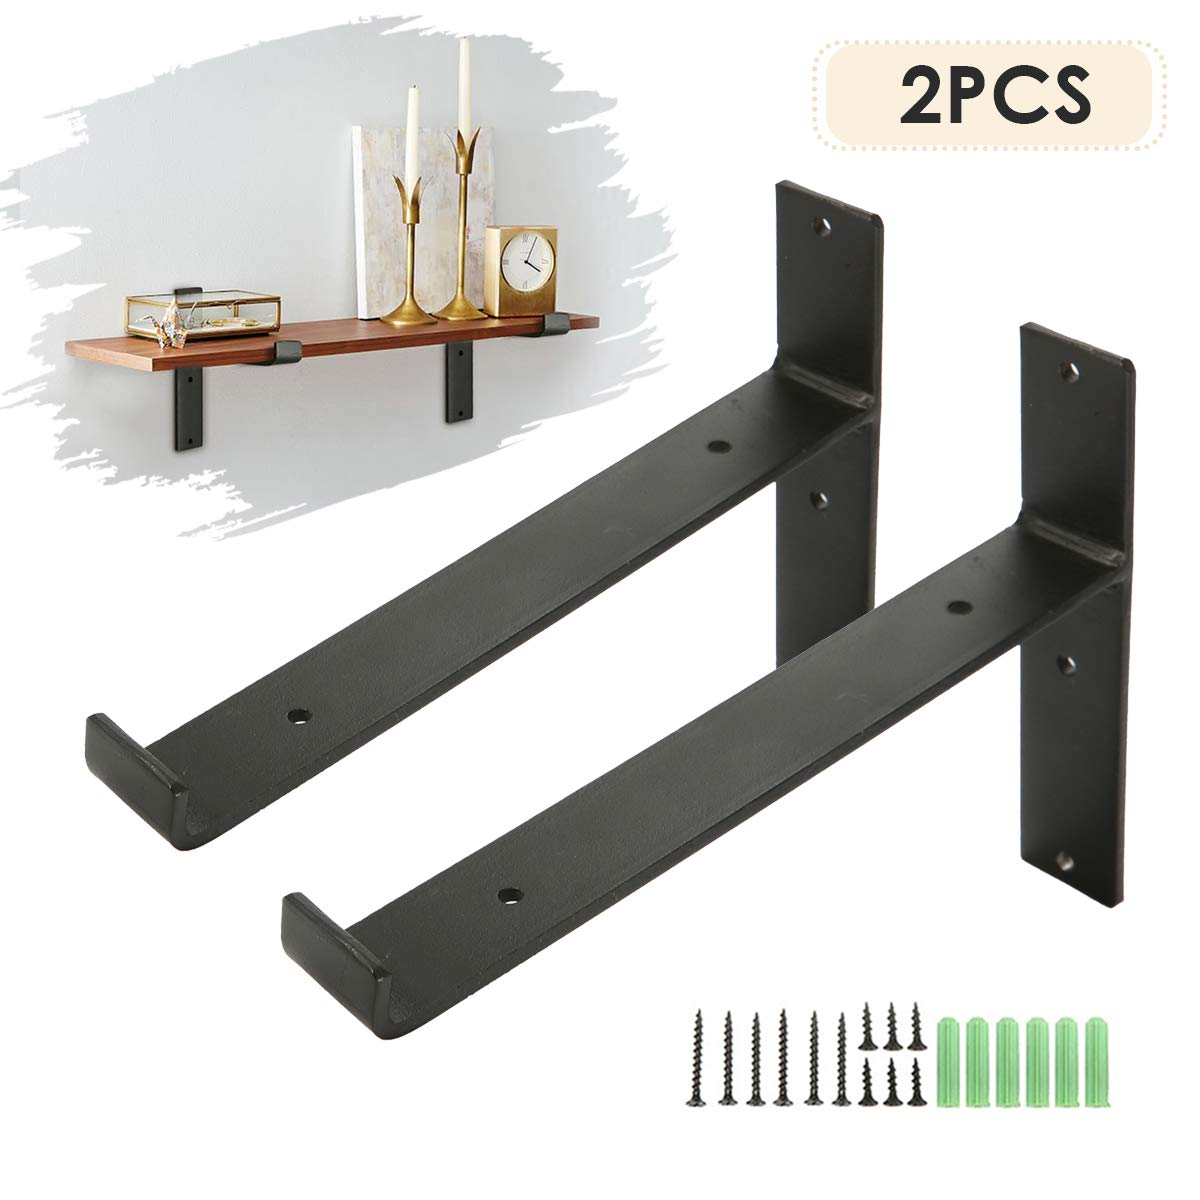 king do way Metal Wall Shelf Brackets 8''L x 6''H Rustic Shelf Supports, Flush Fit, Hardware Only - Bracket Set of 2, Includes Screws & Wall Anchors